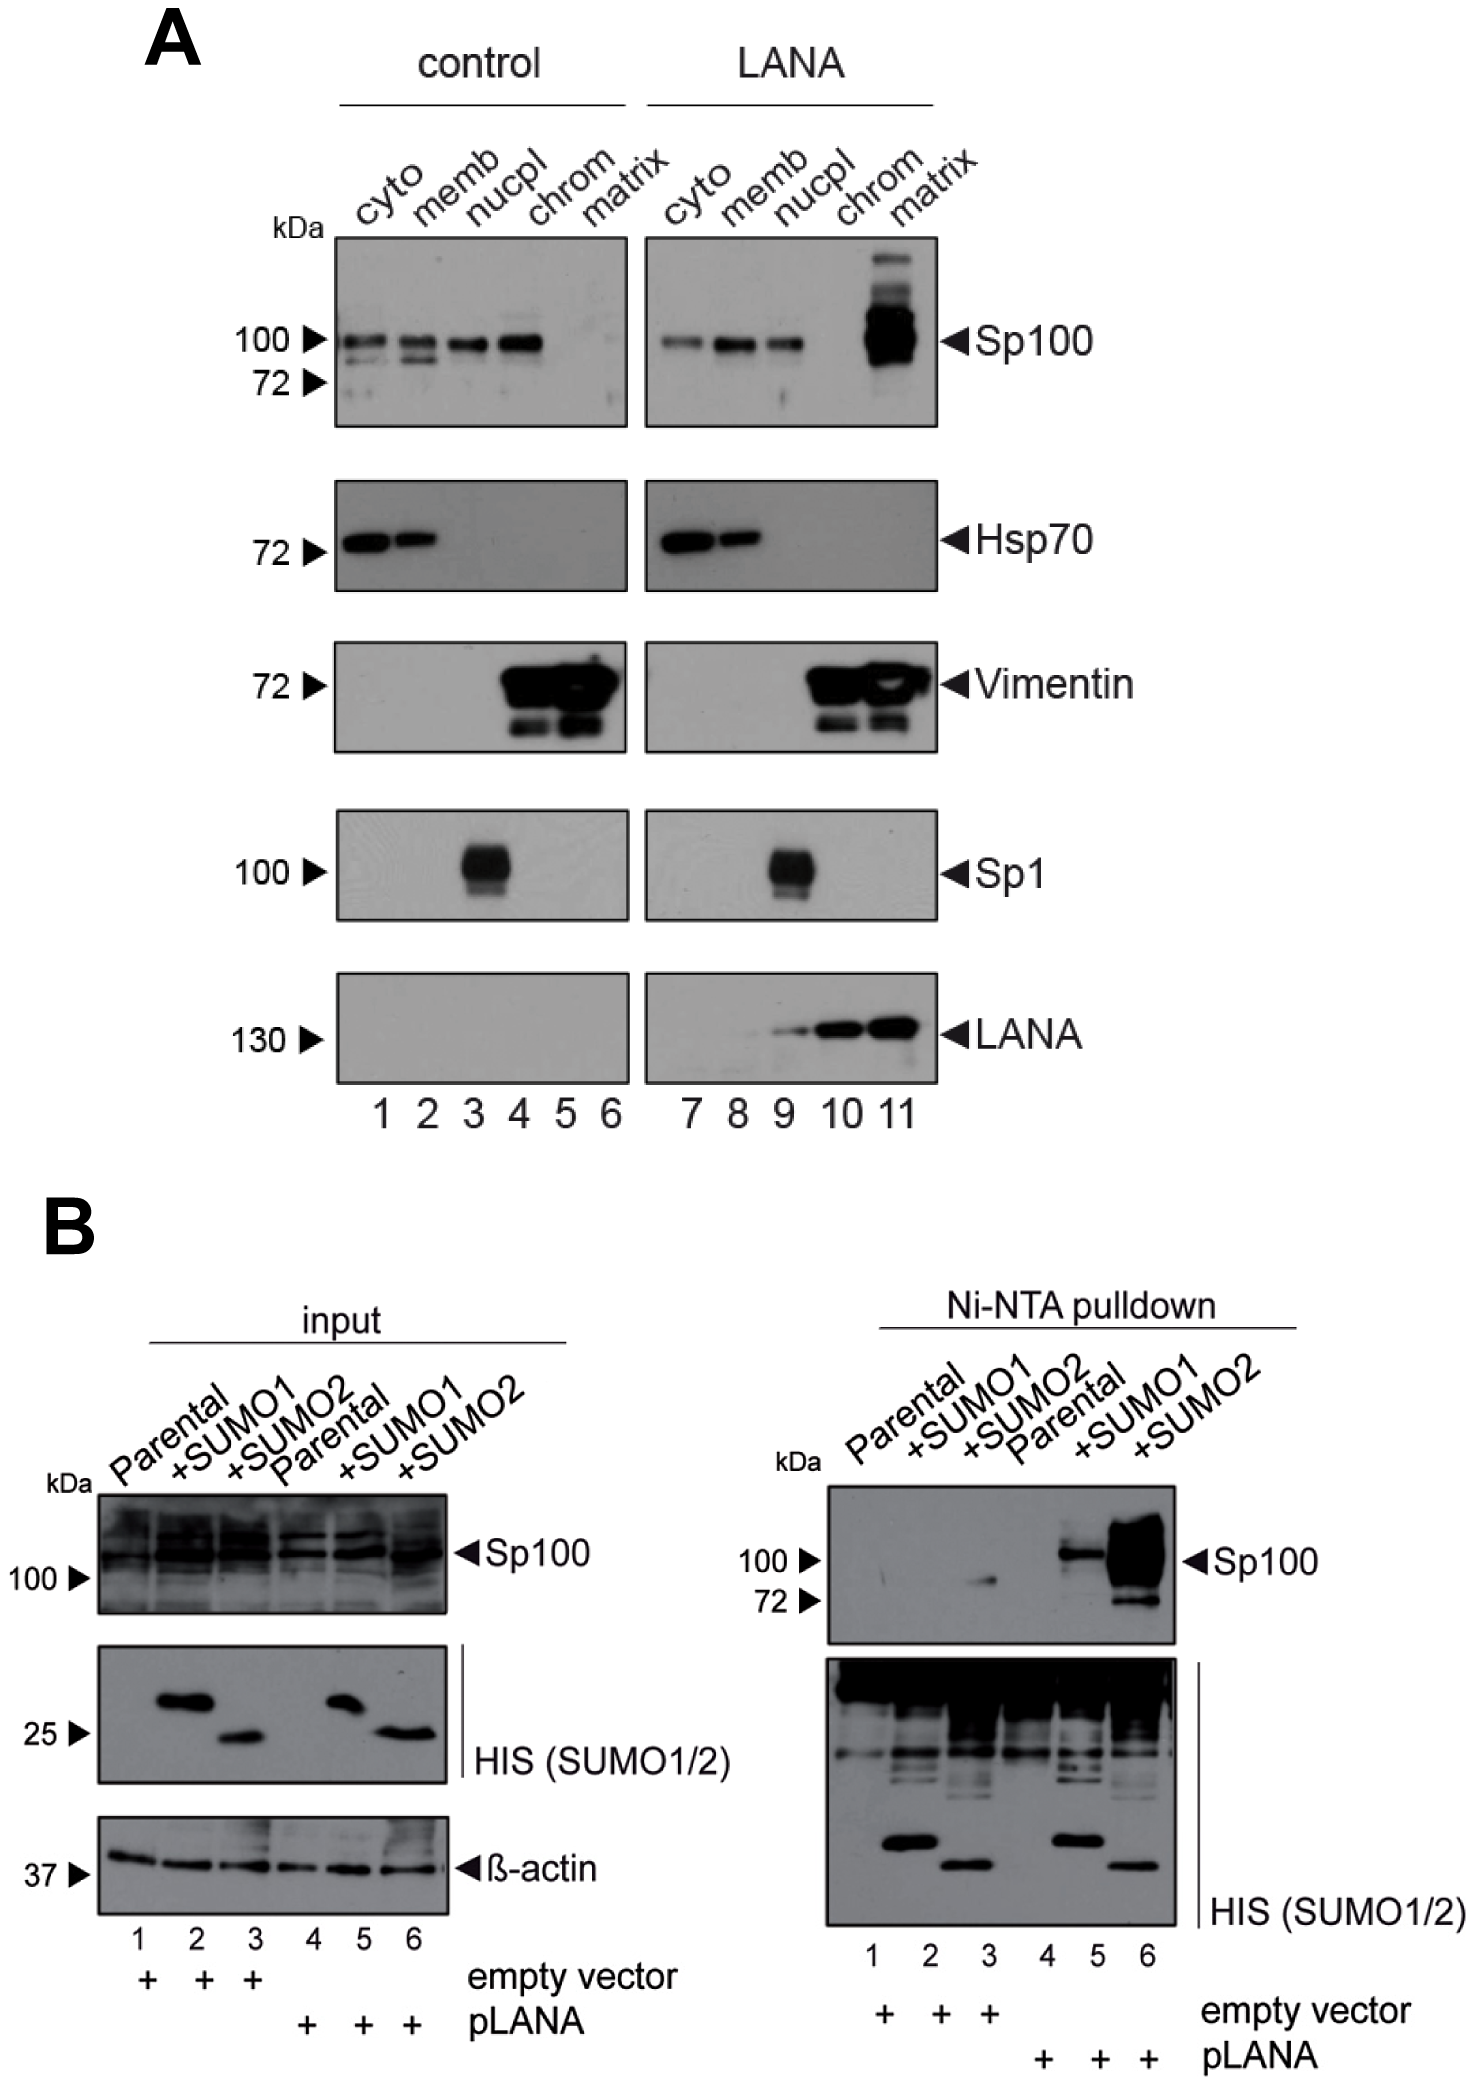 LANA induces relocalization and SUMOylation of Sp100.